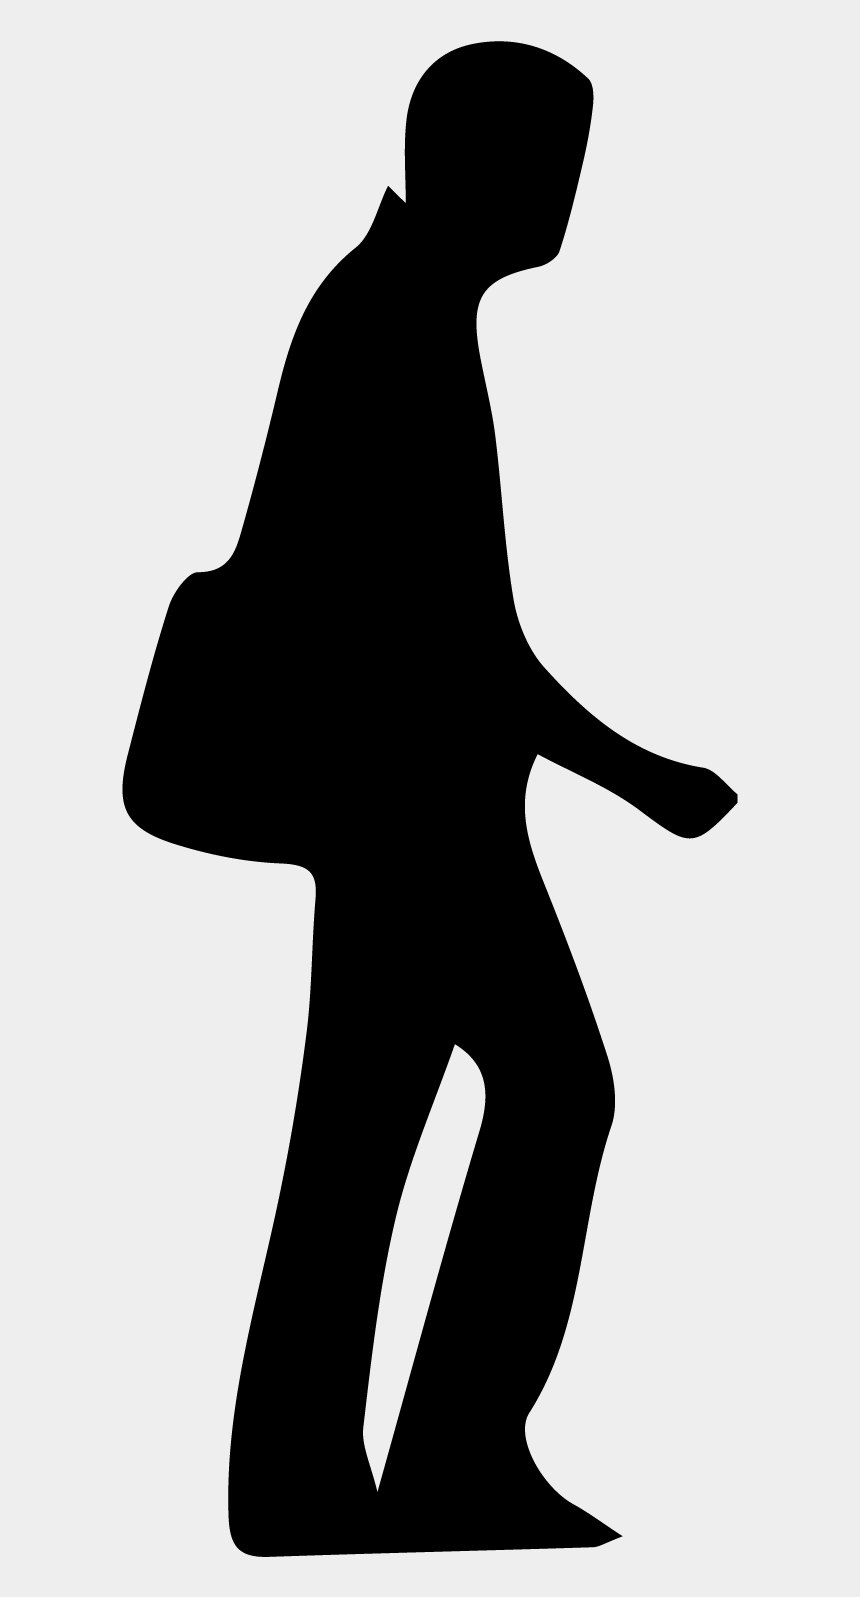 walking clipart, Cartoons - Clipart Walking Man Walking - Man Walking Right Silhouette